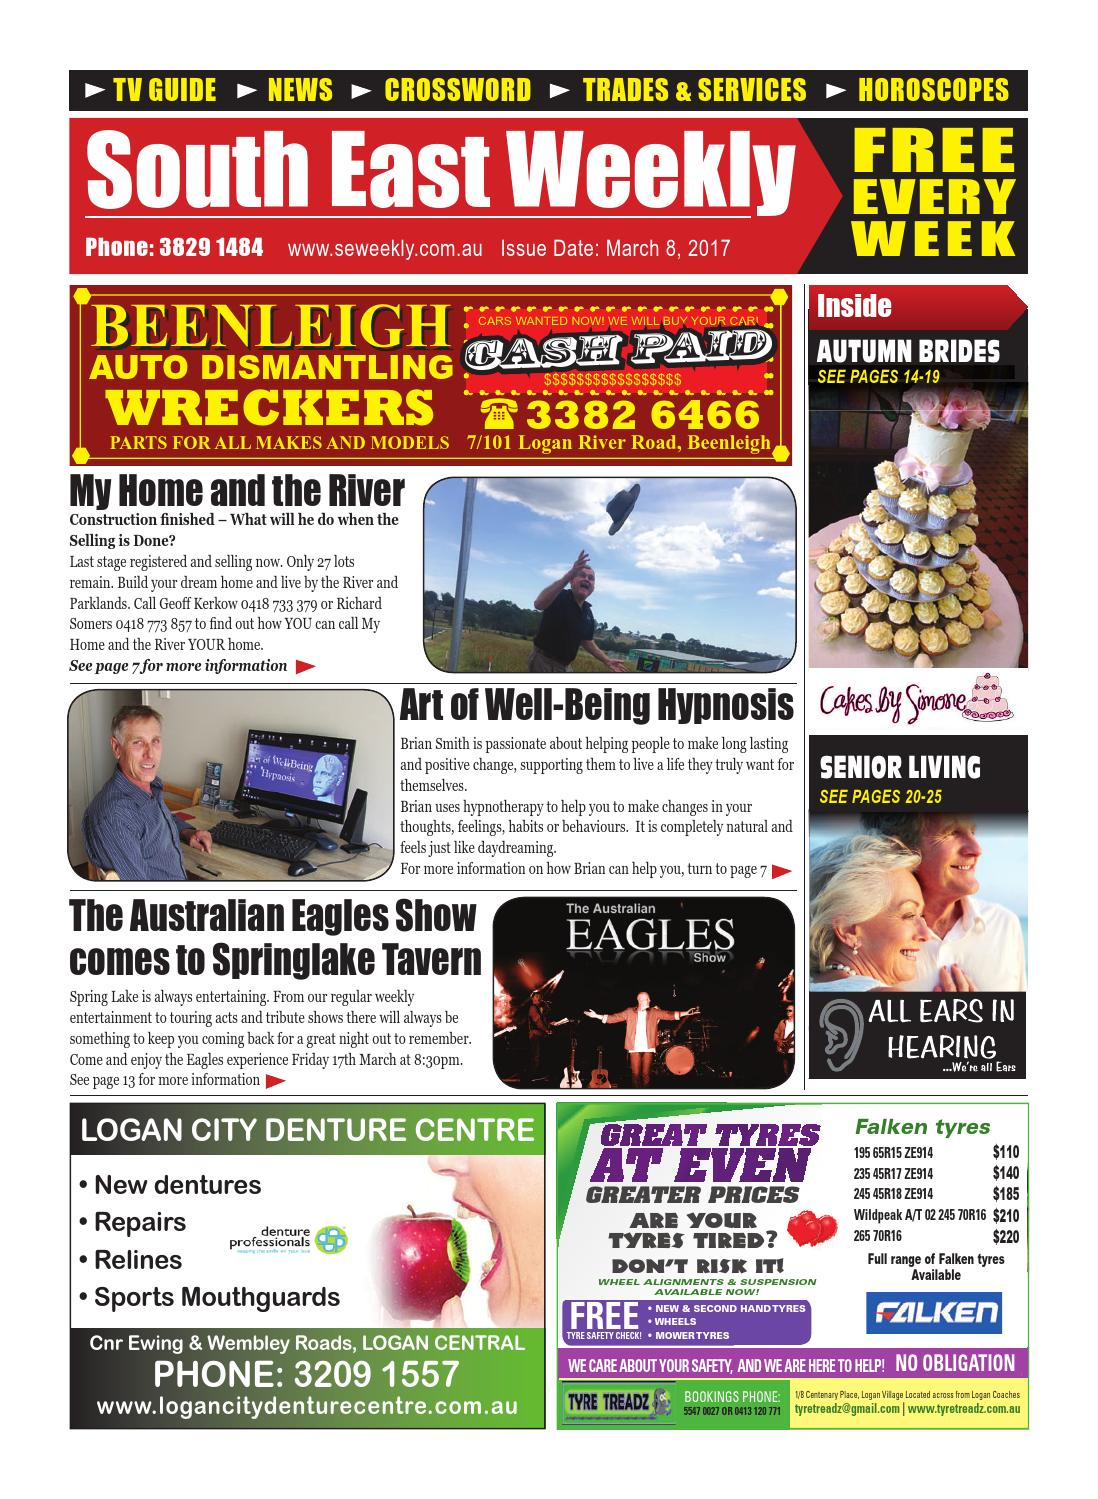 South East Weekly Magazine - March 8, 2017 by South East Weekly Magazine -  issuu